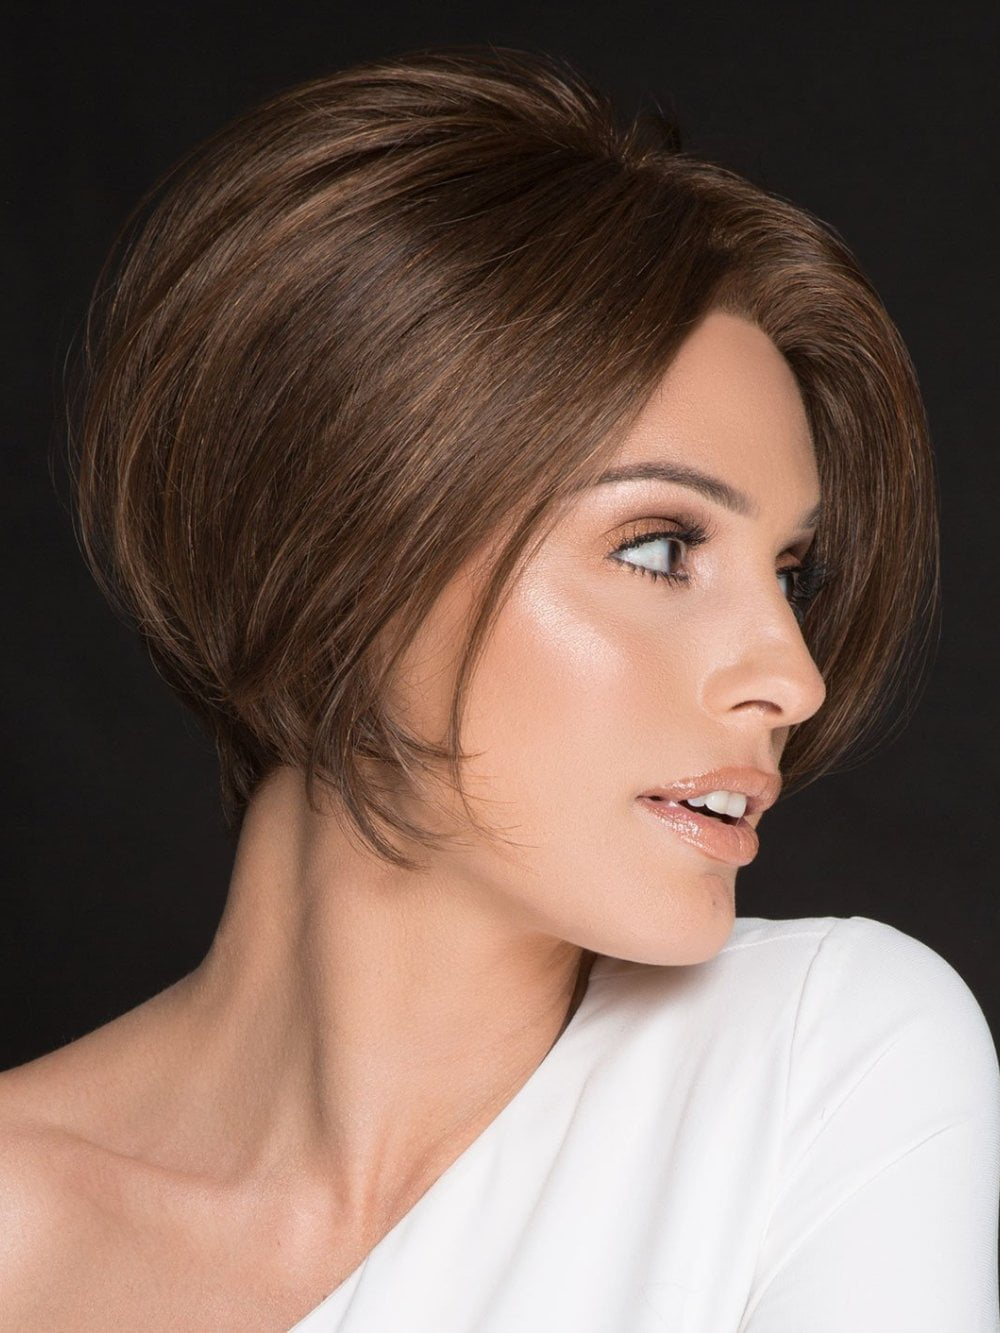 Rich by Ellen Wille is a lightweight asymmetrical style with a long fringe that falls perfectly along the face